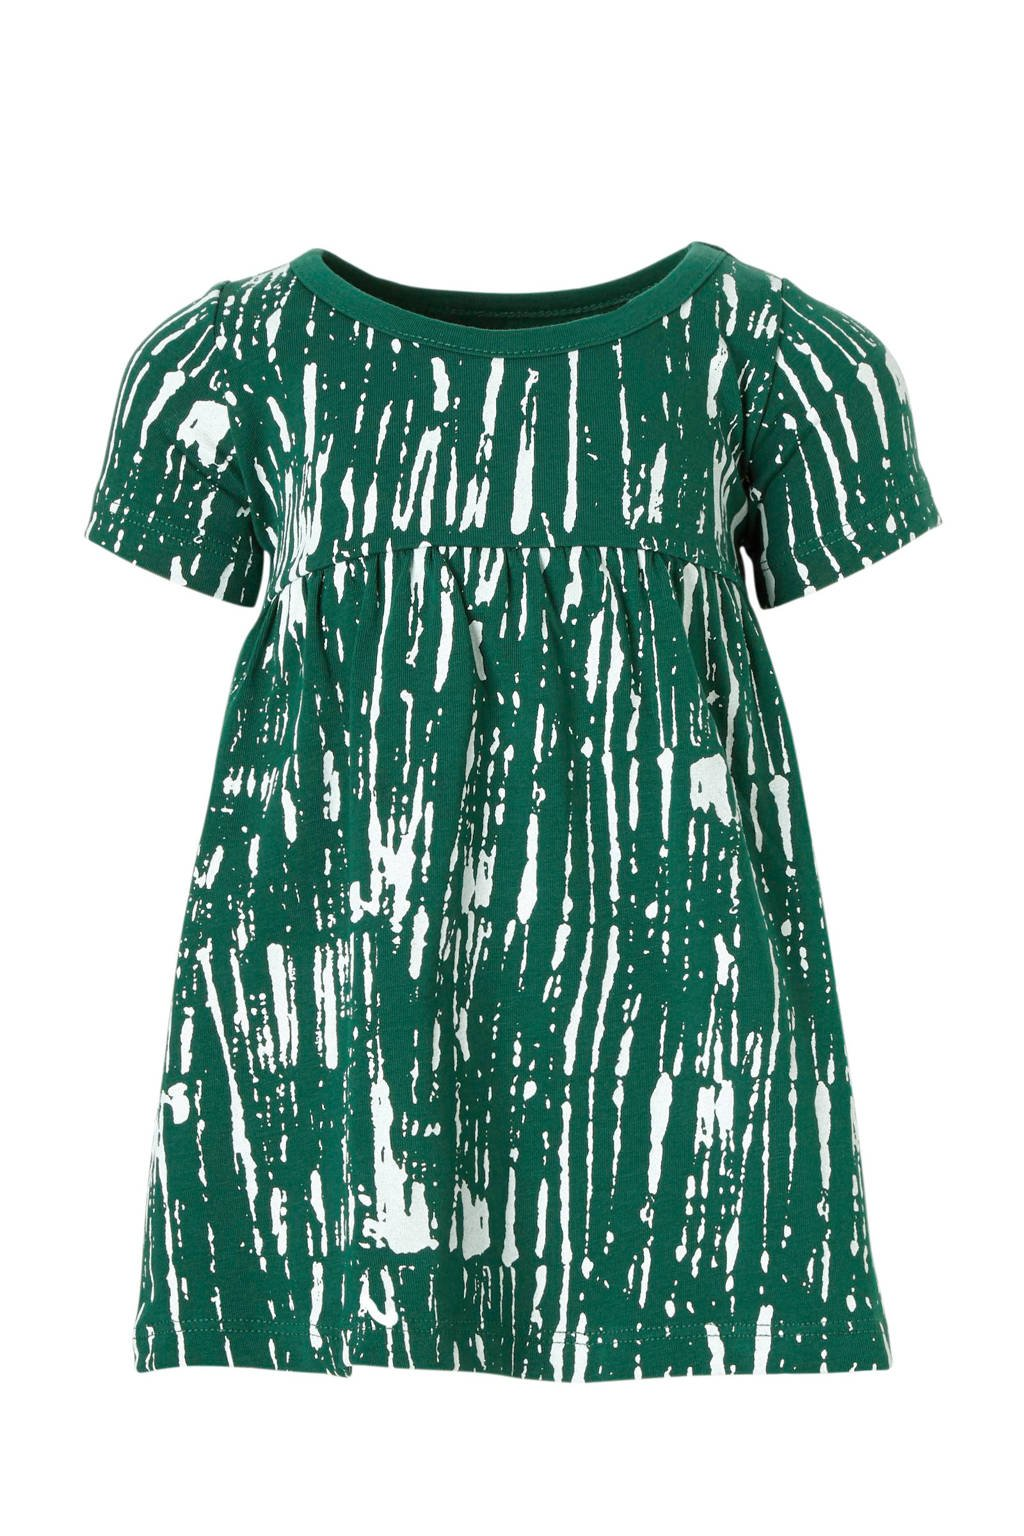 Little Indians baby jurk met all over print groen, Groen/wit